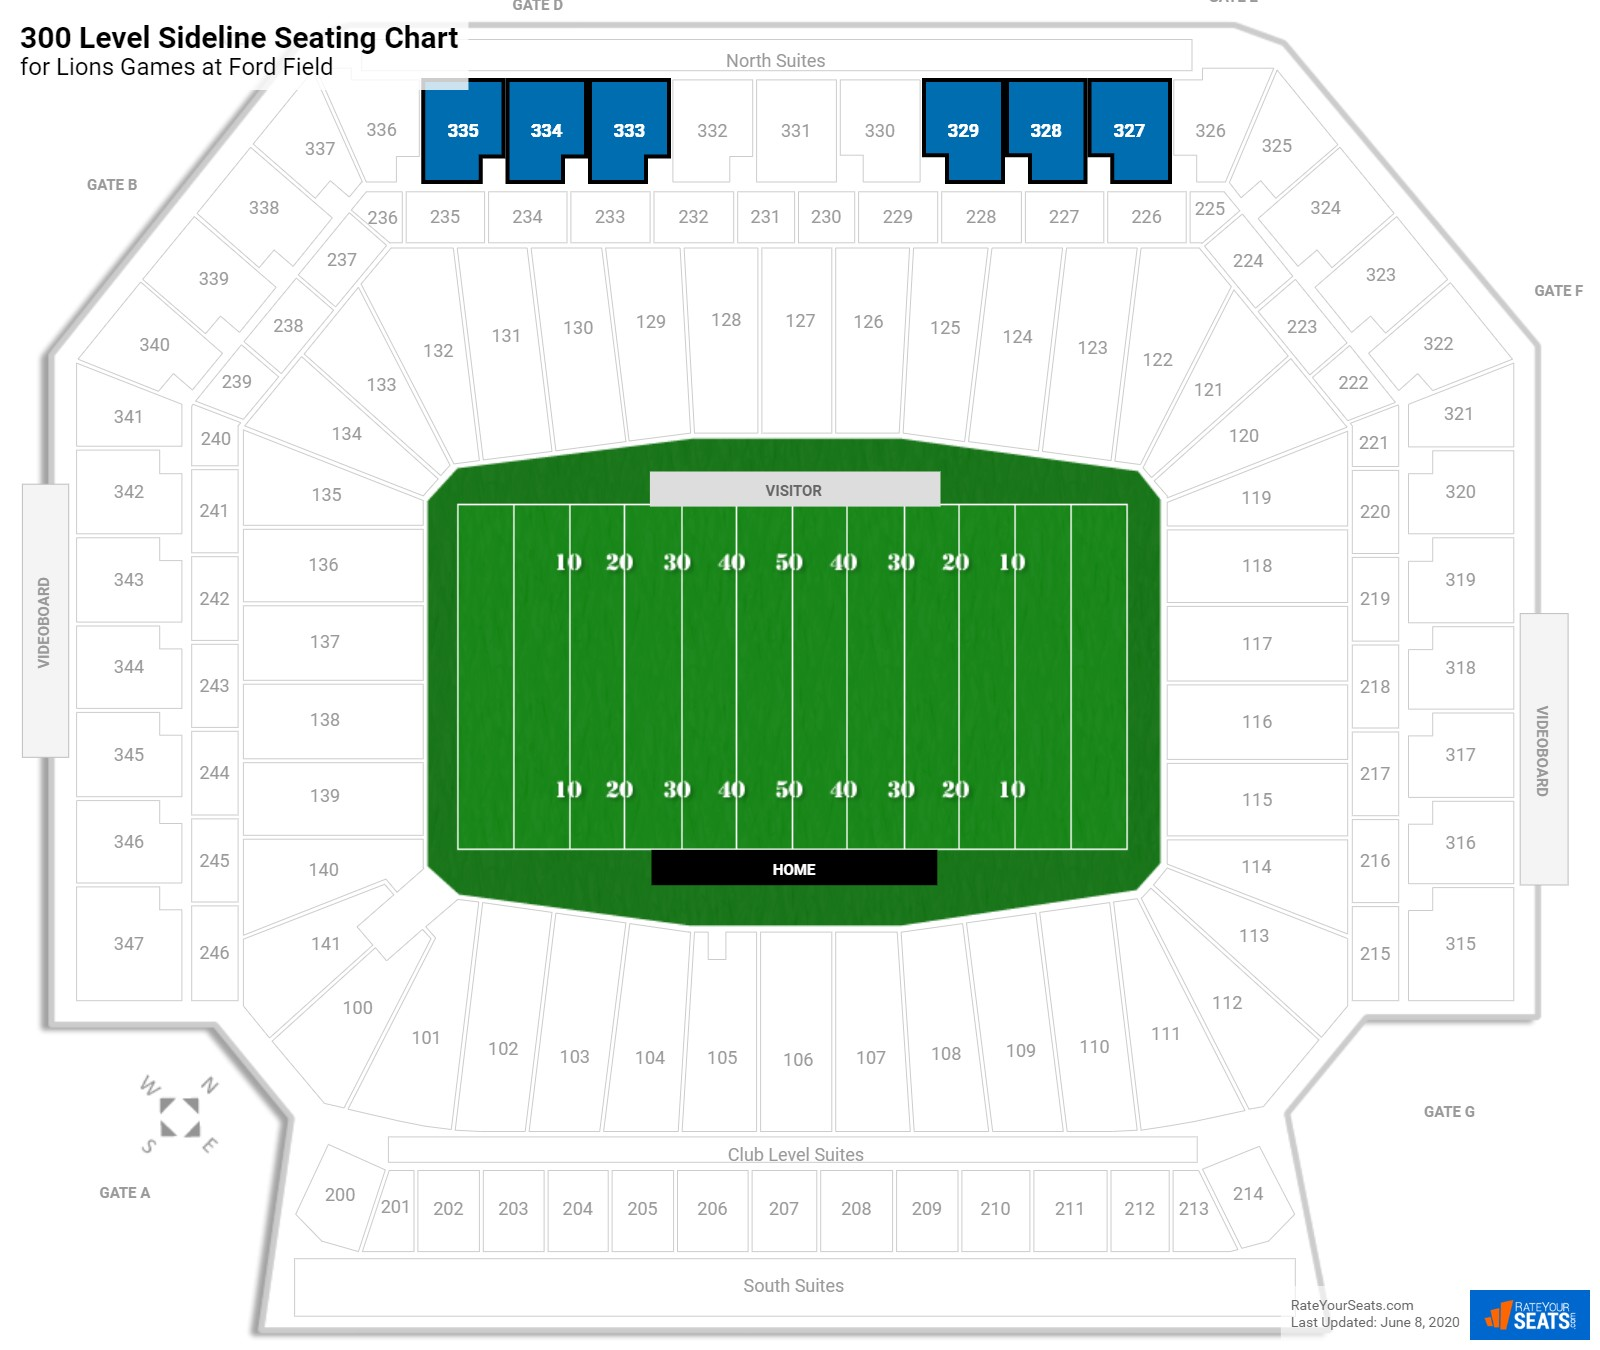 Ford Field 300 Level Sideline seating chart